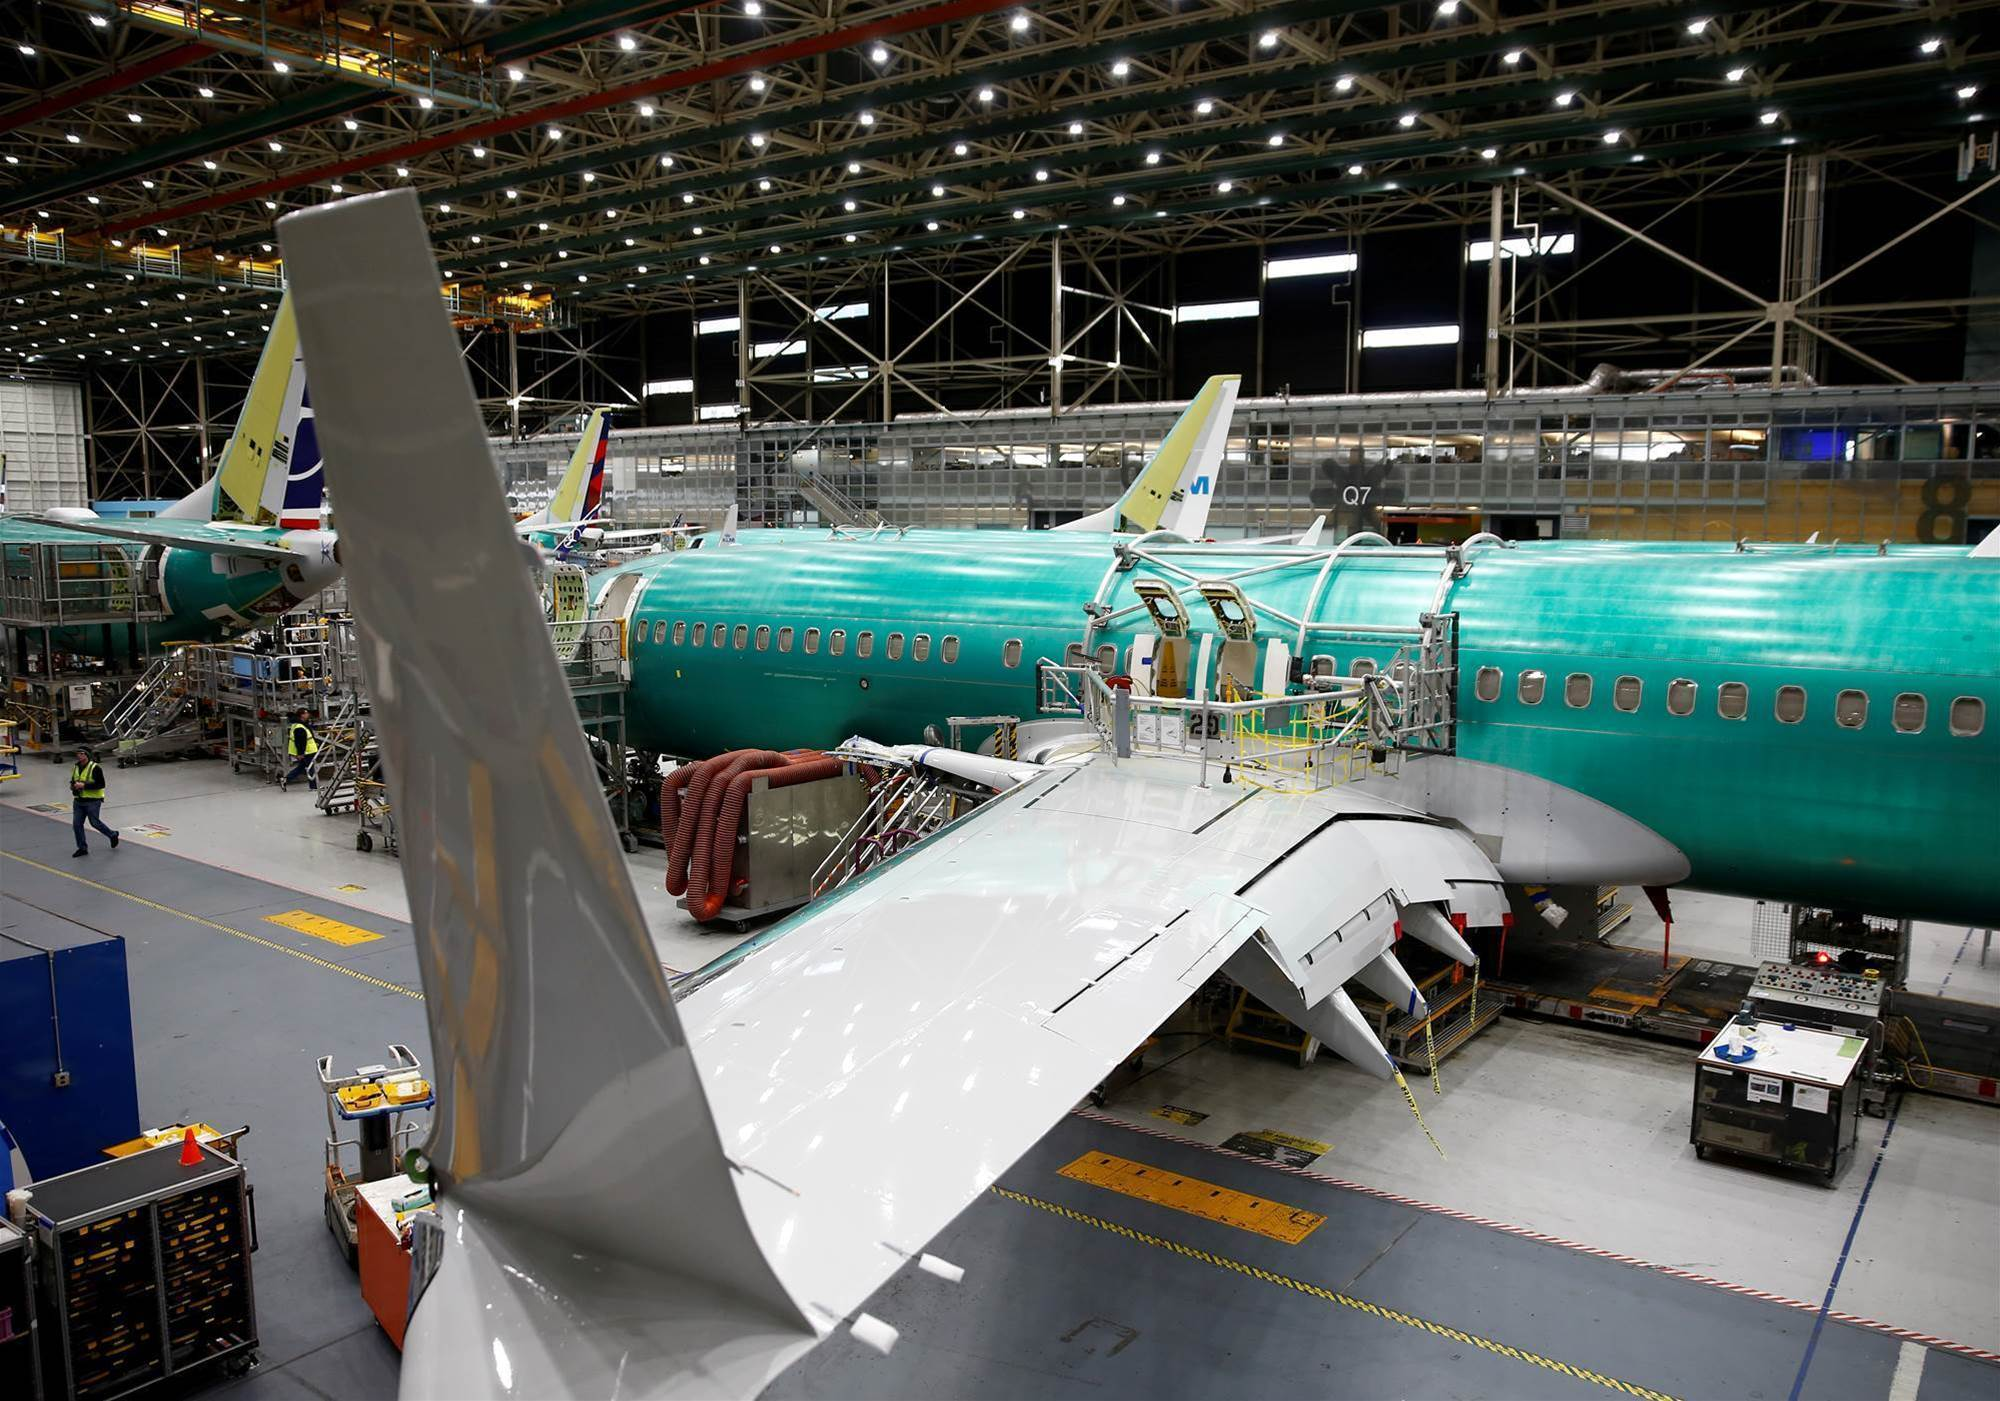 FAA panel finds Boeing 737 MAX software upgrade 'operationally suitable'